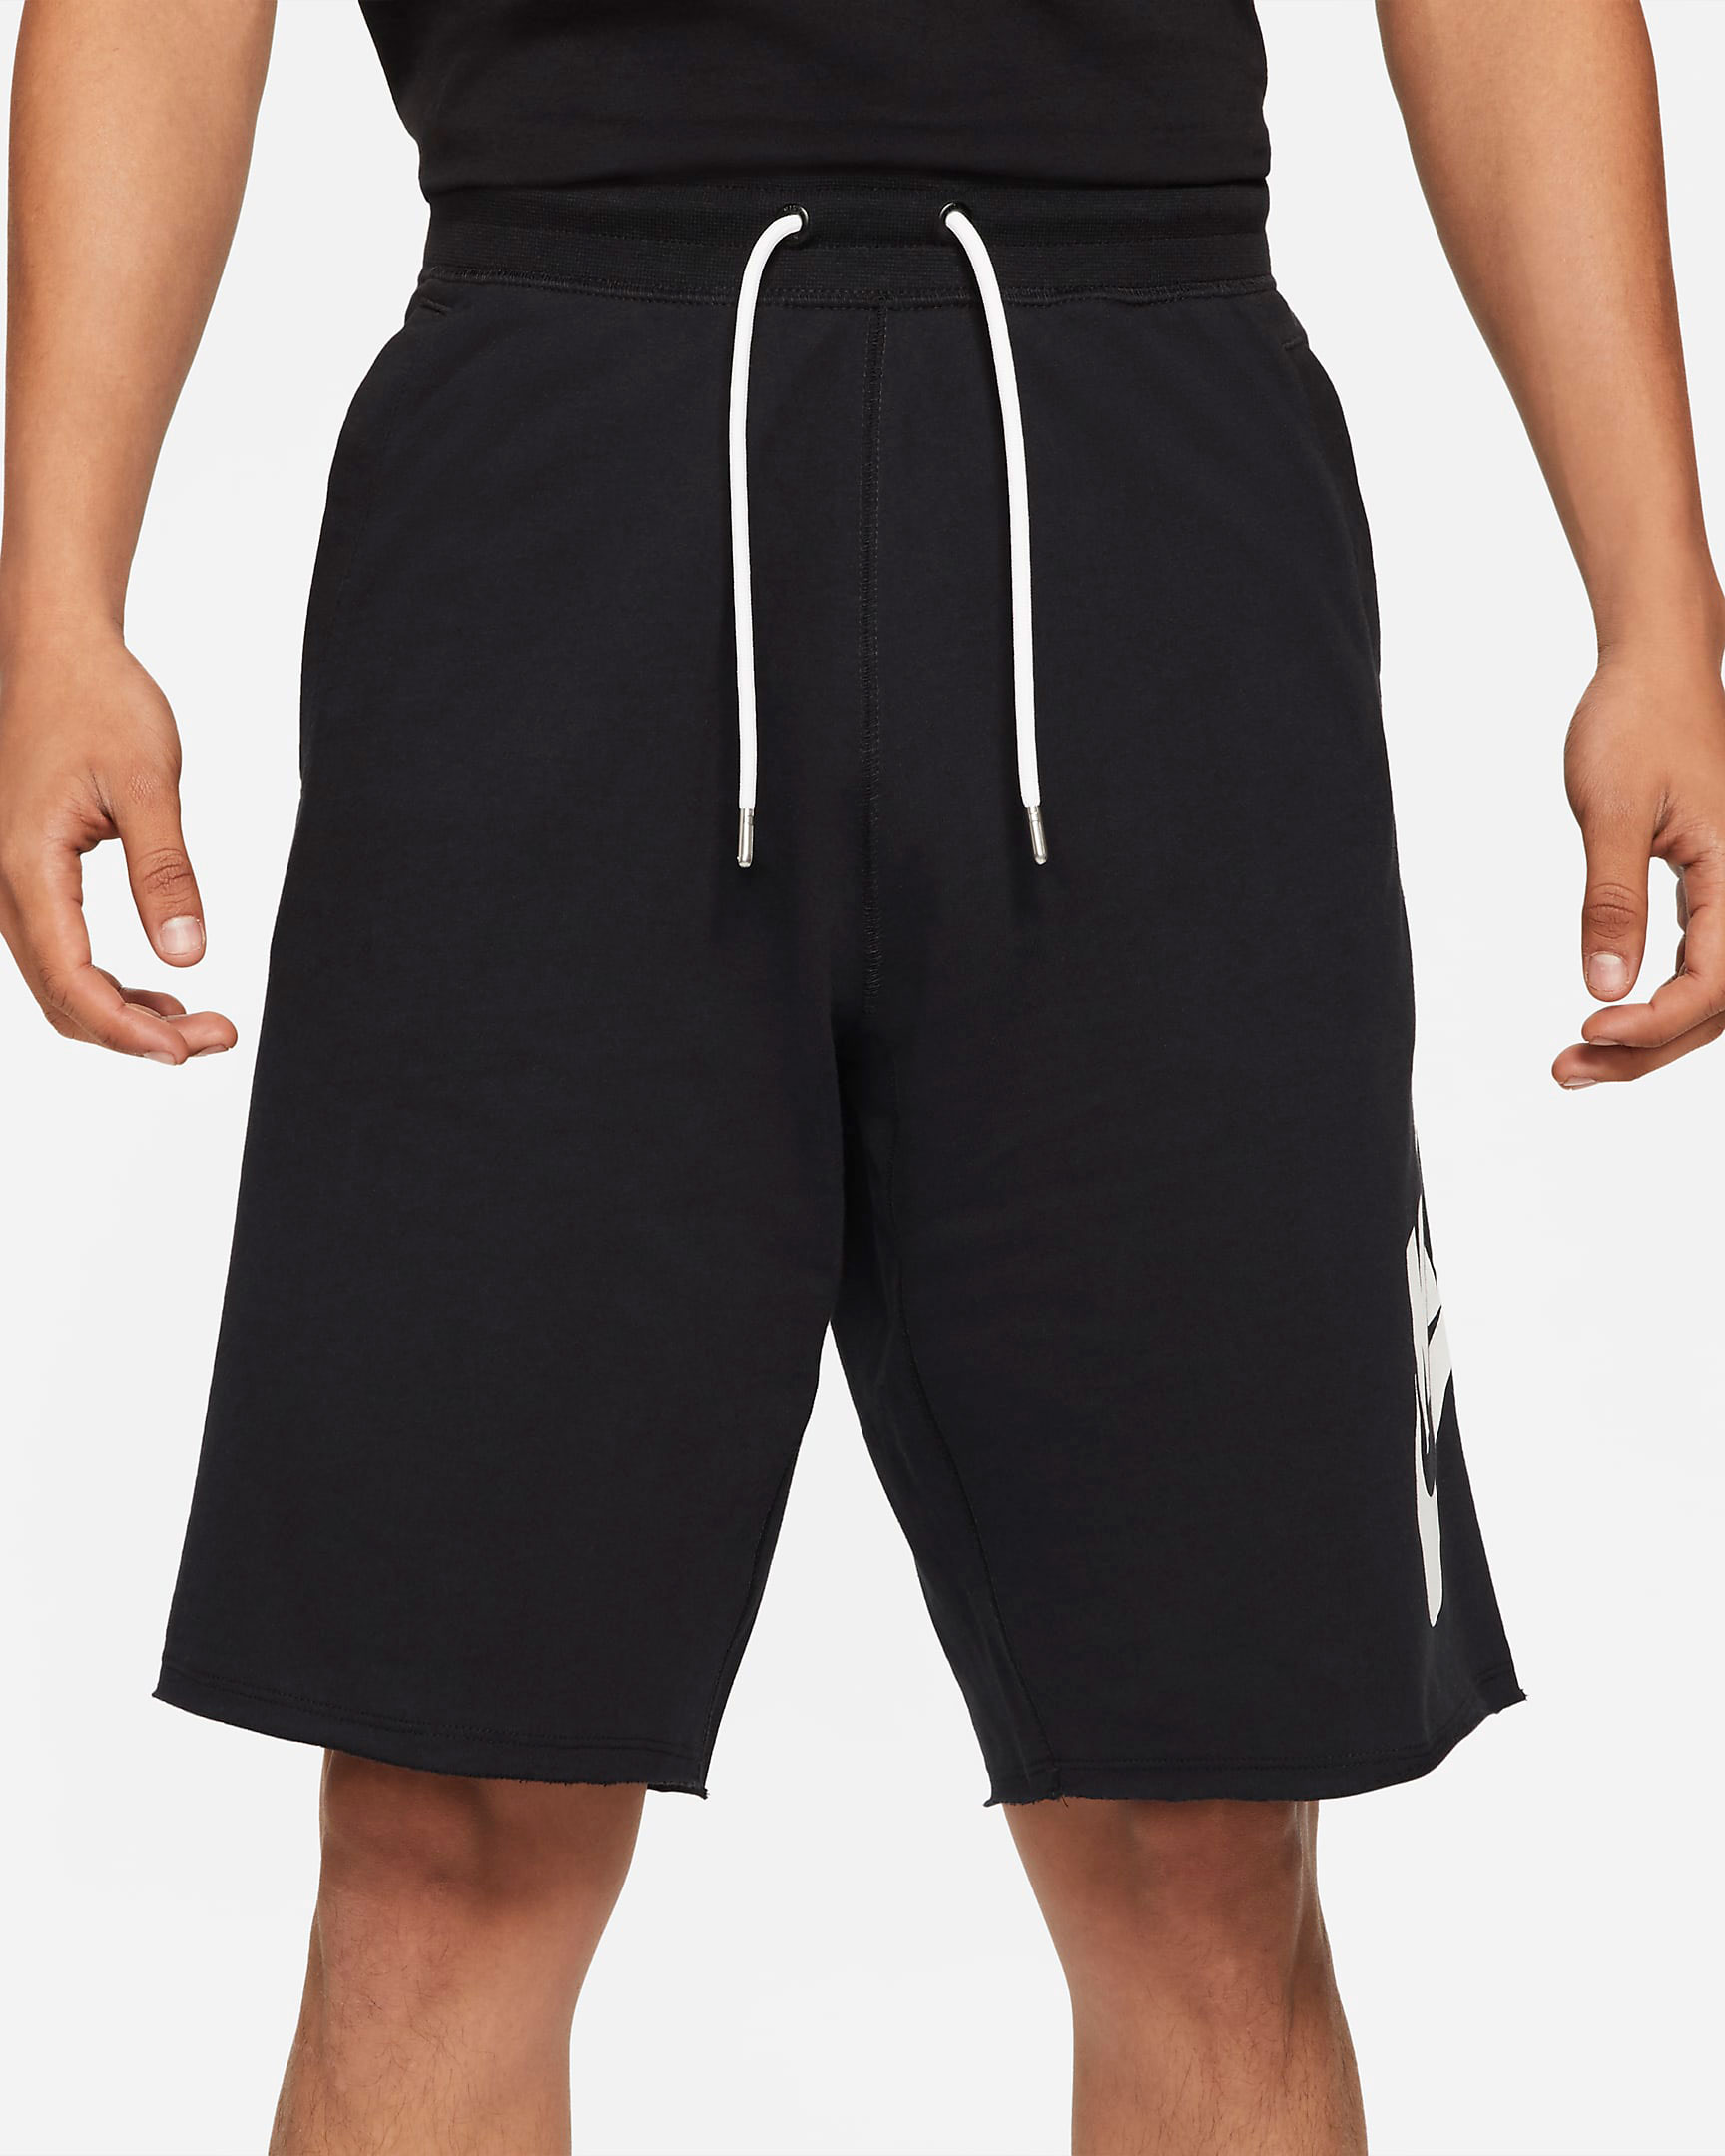 nike-dunk-low-black-white-shorts-1